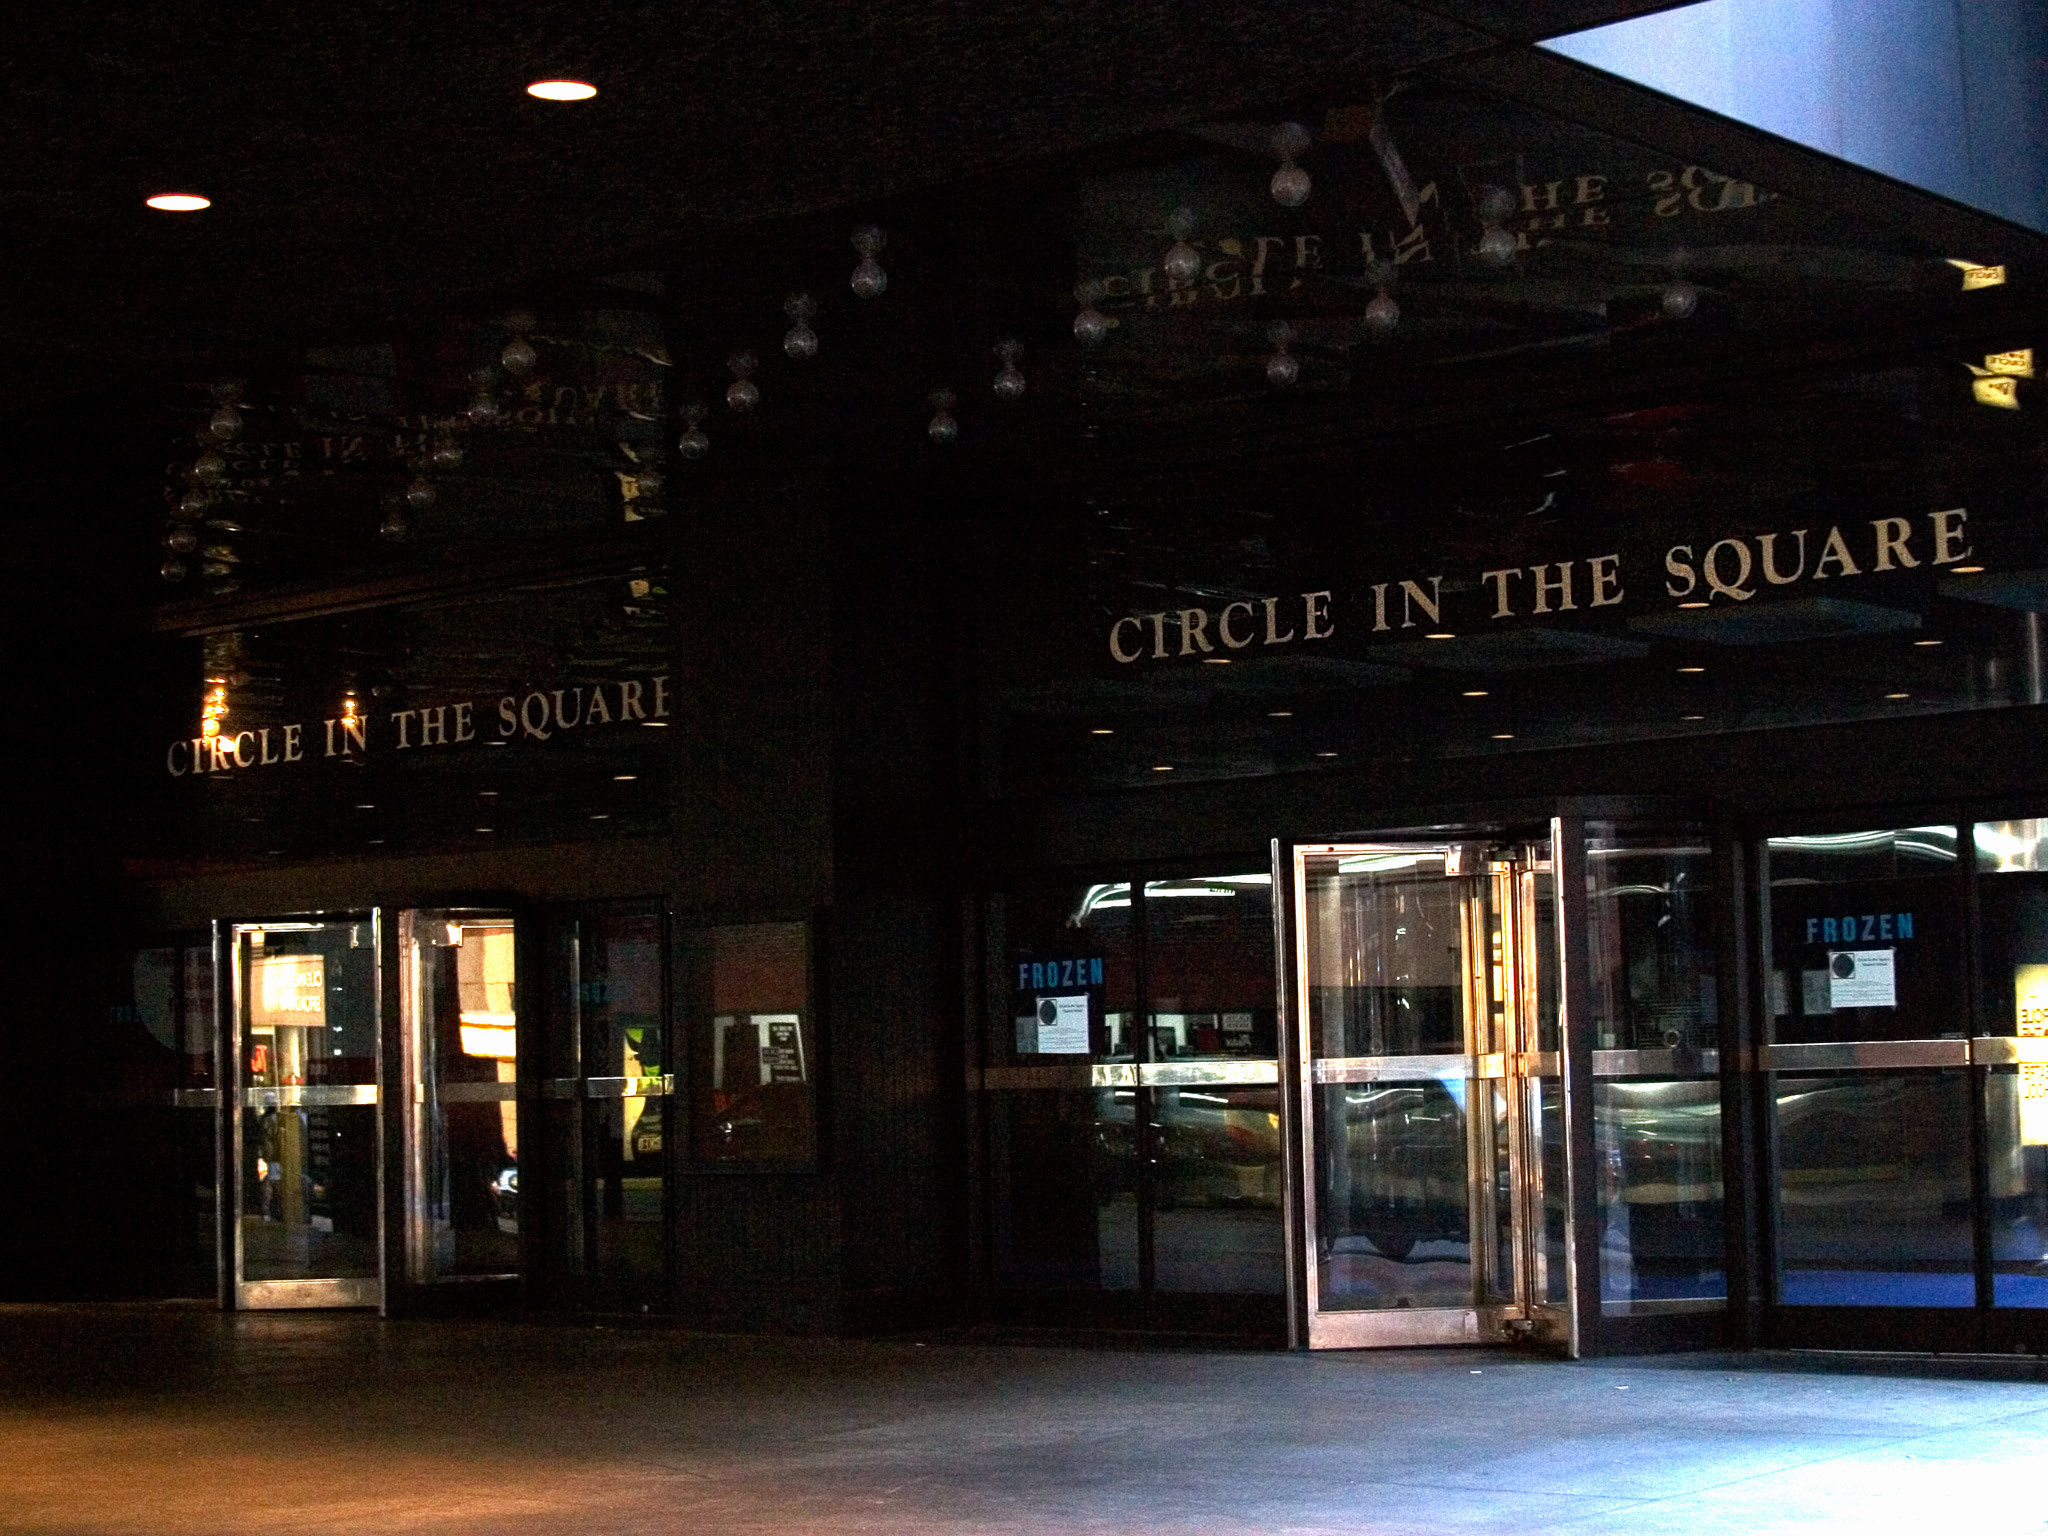 Circle In The Square Theatre on Broadway in NYC